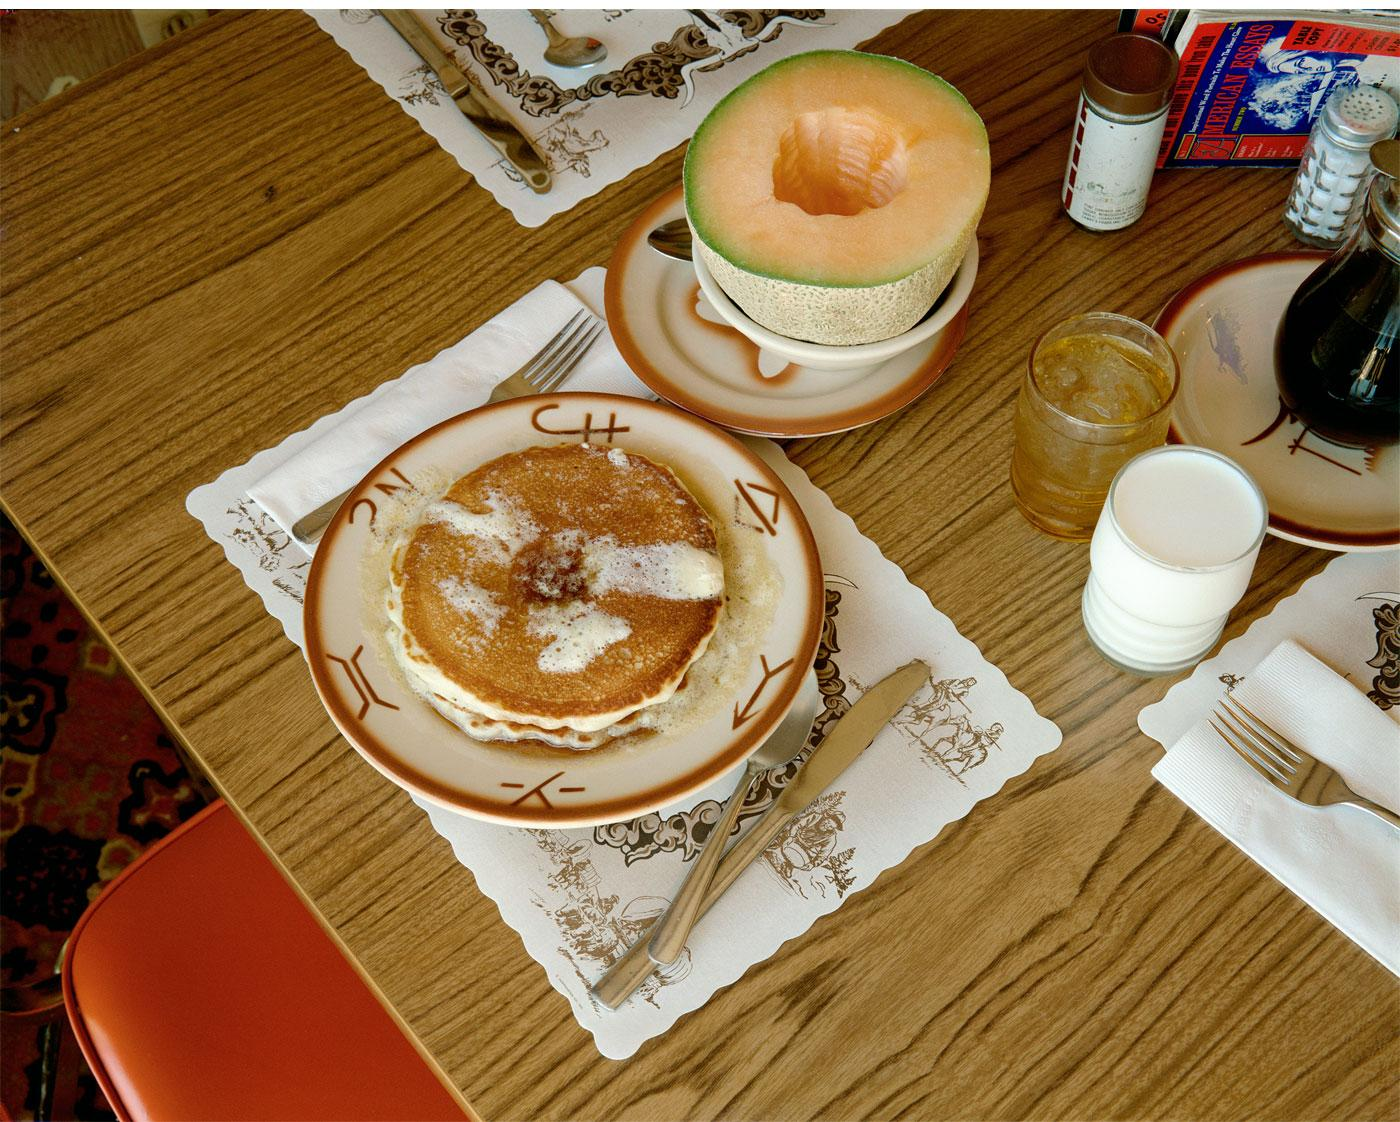 Pancakes by Stephen Shore